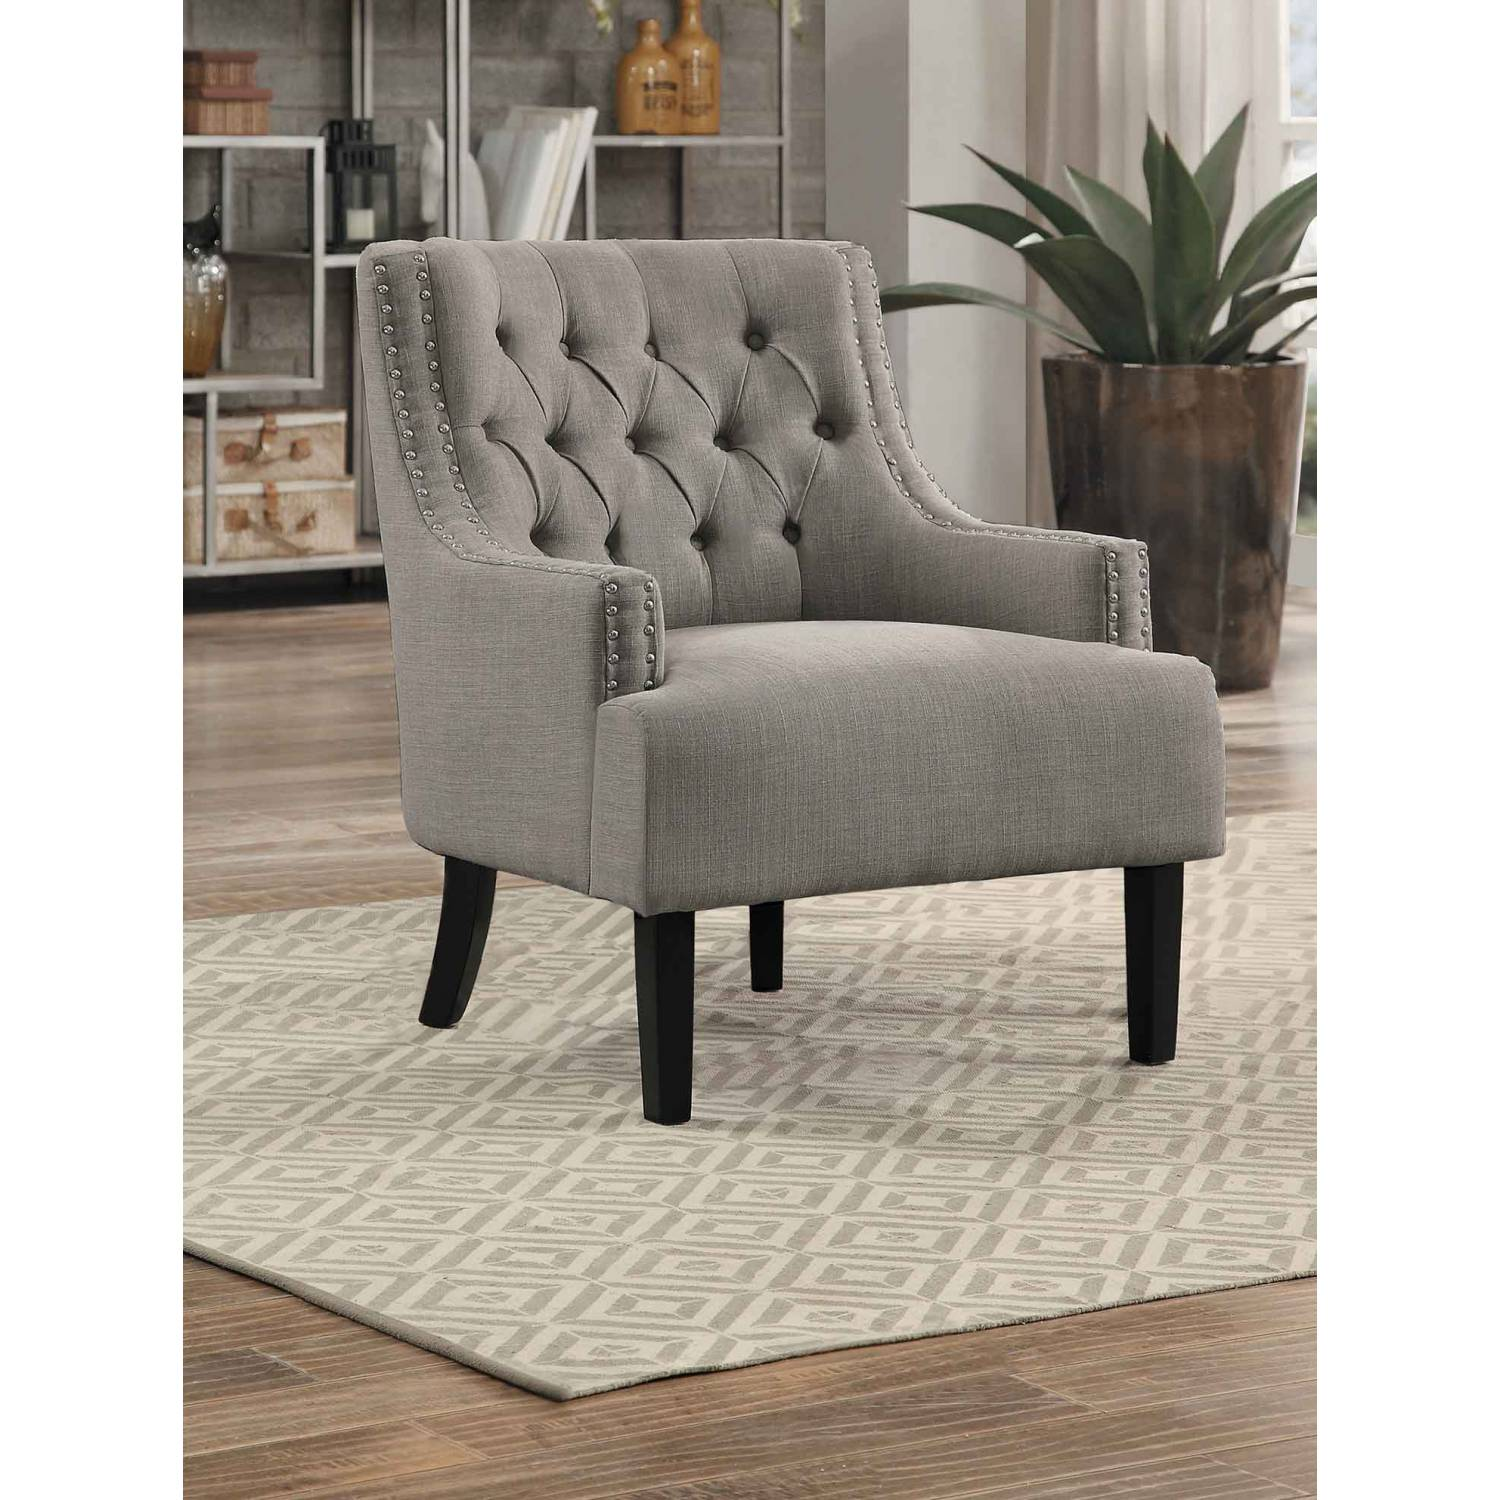 Outstanding Charisma Accent Chair Indigo Gmtry Best Dining Table And Chair Ideas Images Gmtryco